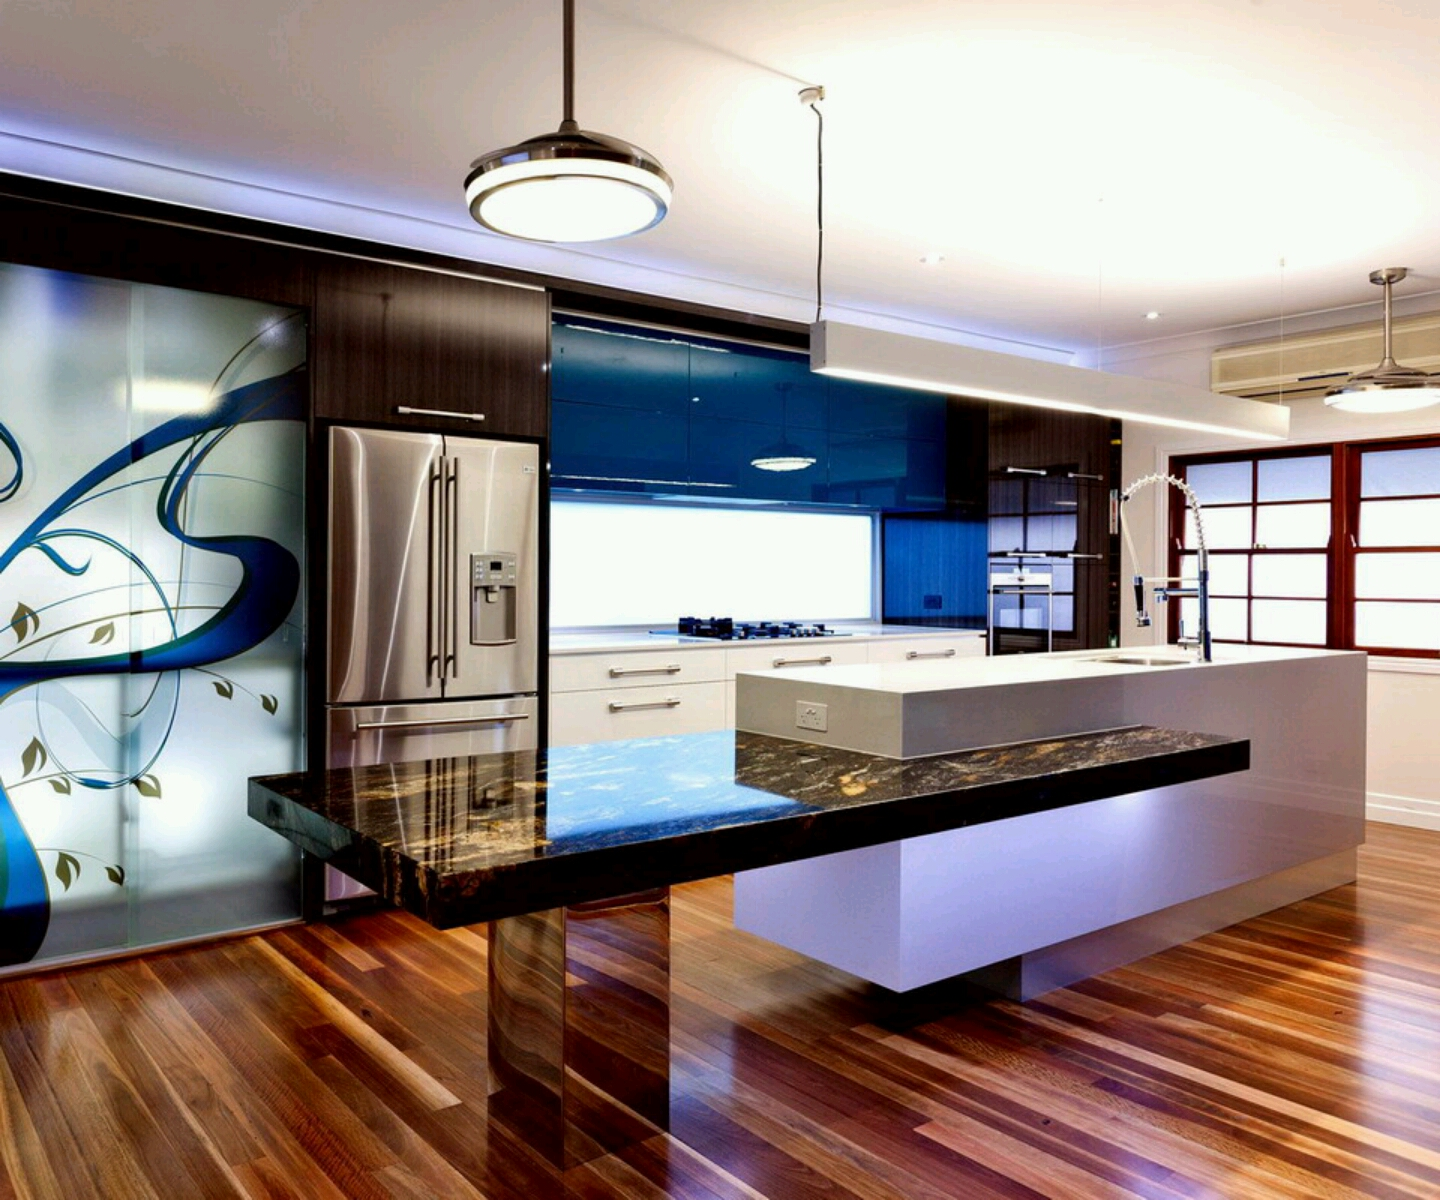 Ultra modern kitchen designs ideas new home designs for House kitchen ideas